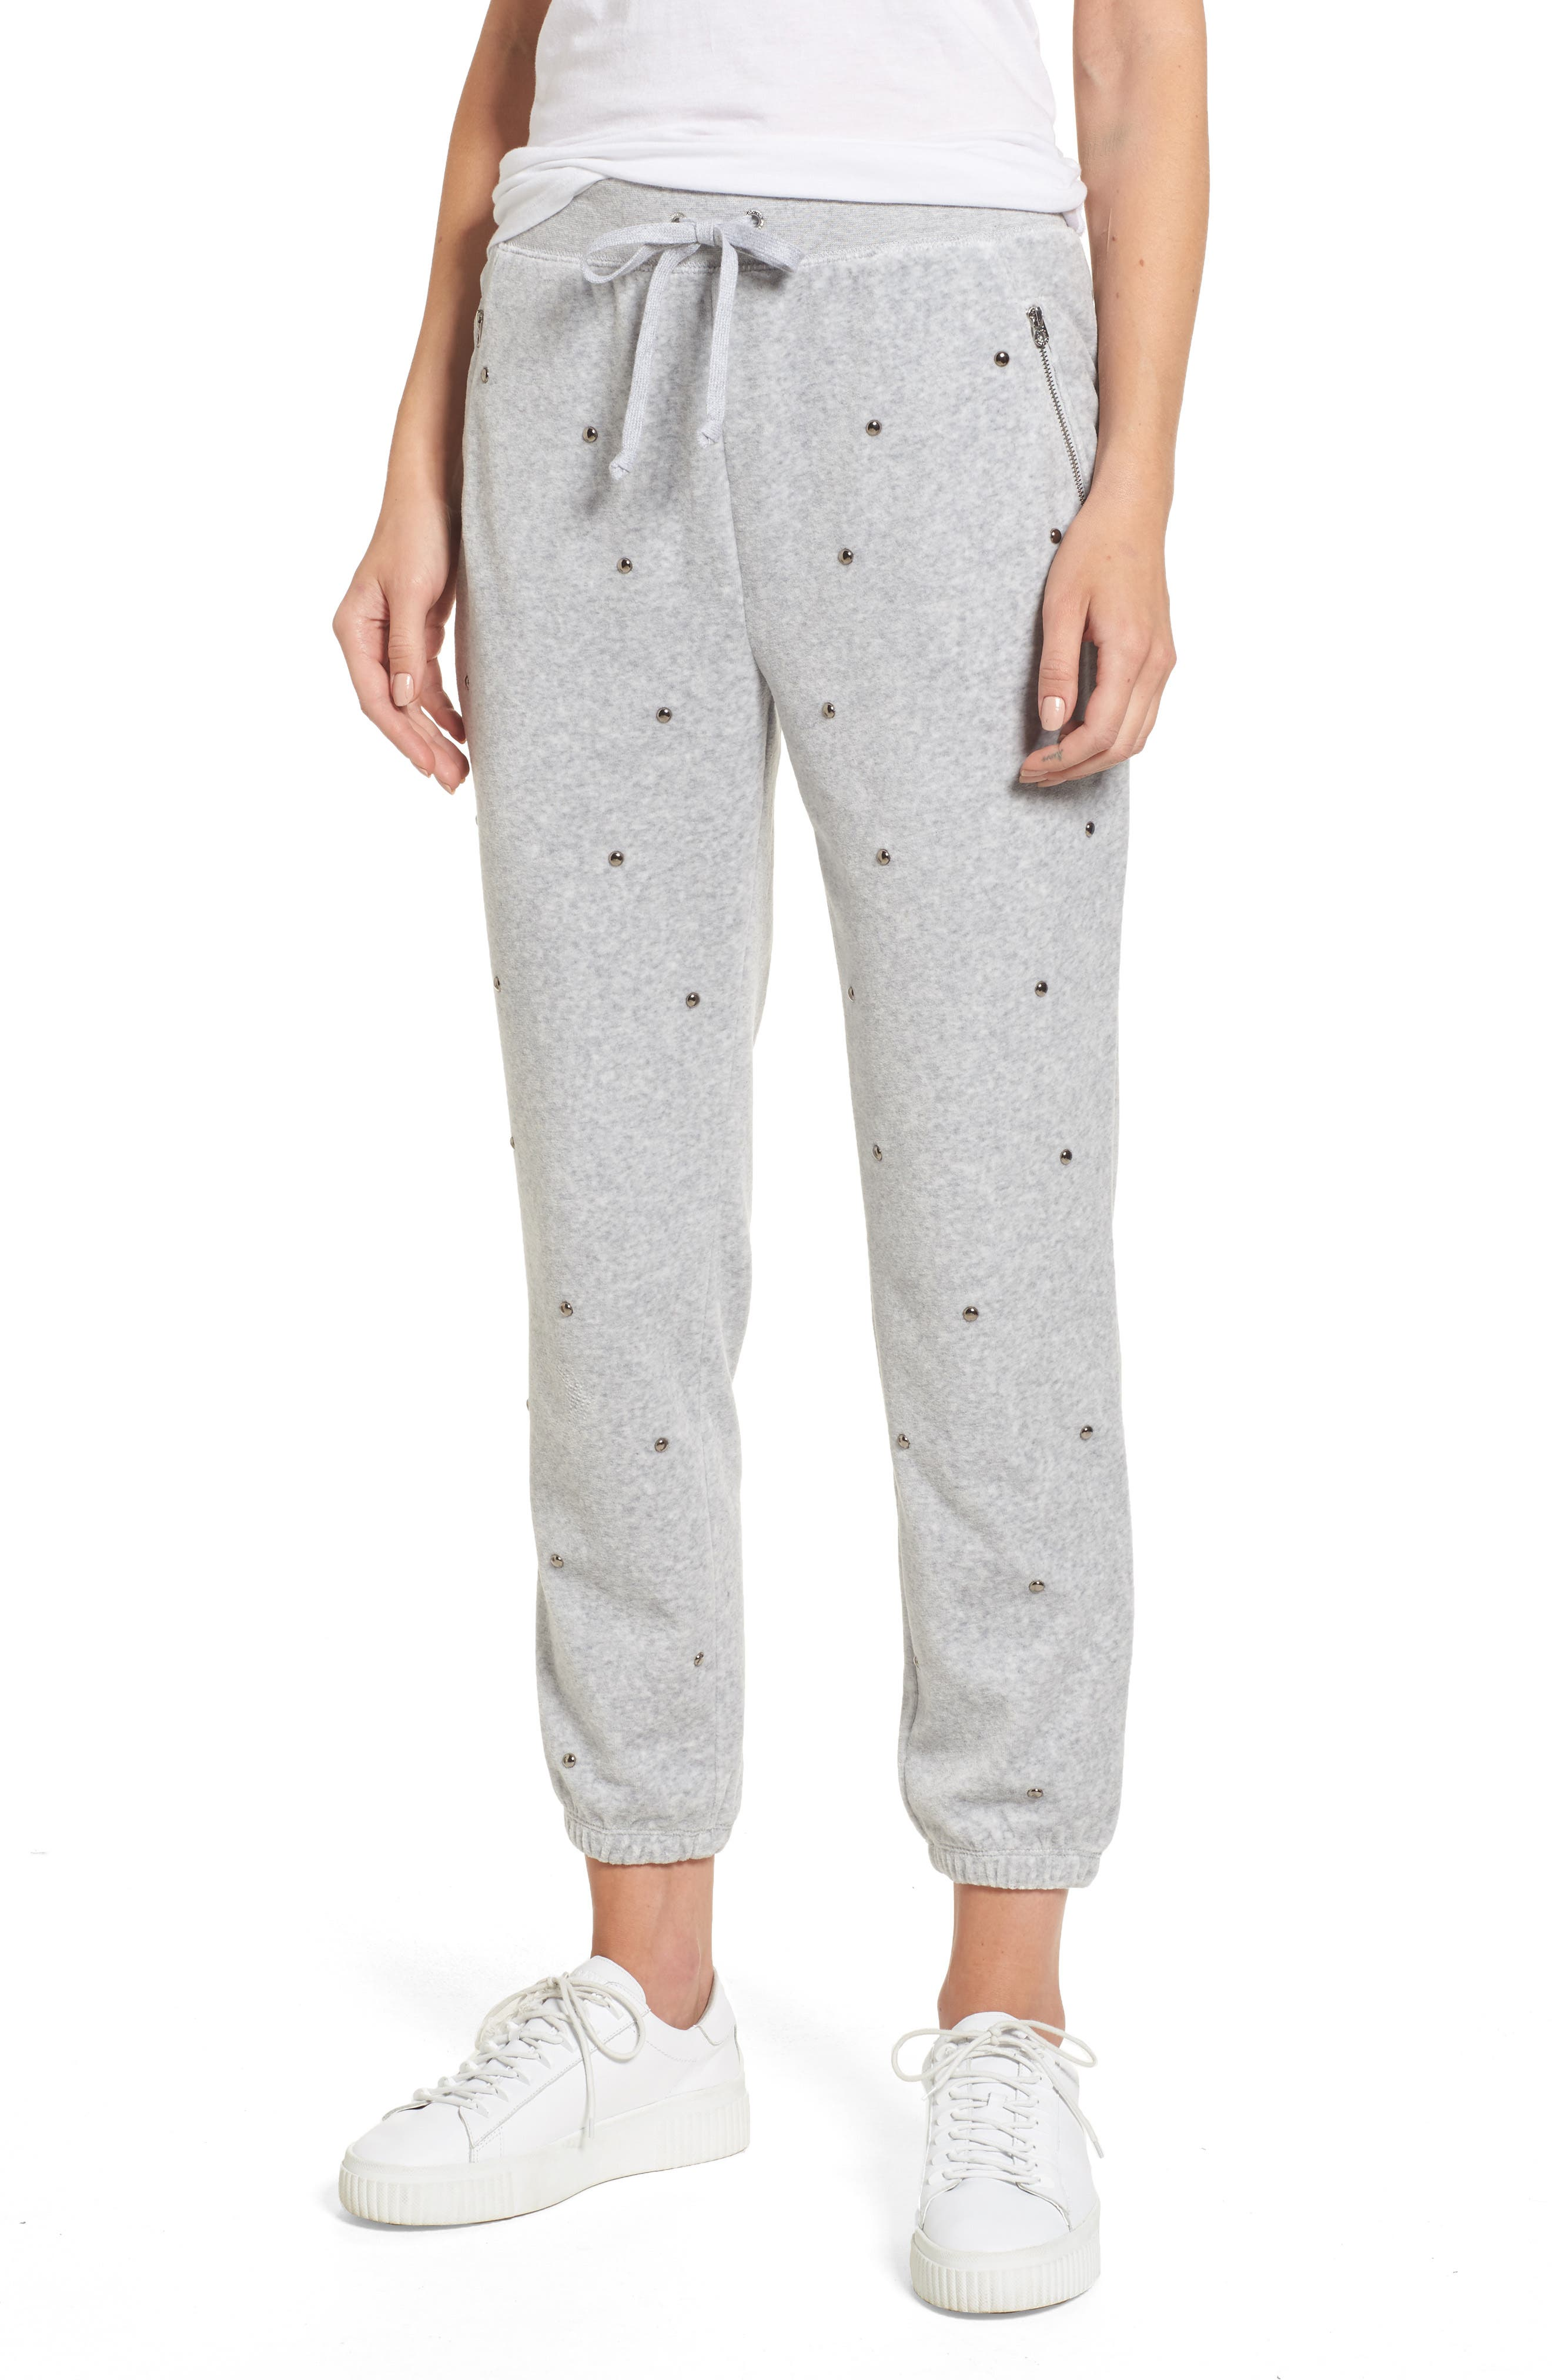 Alternate Image 1 Selected - Juicy Couture Velour Studded Track Pants